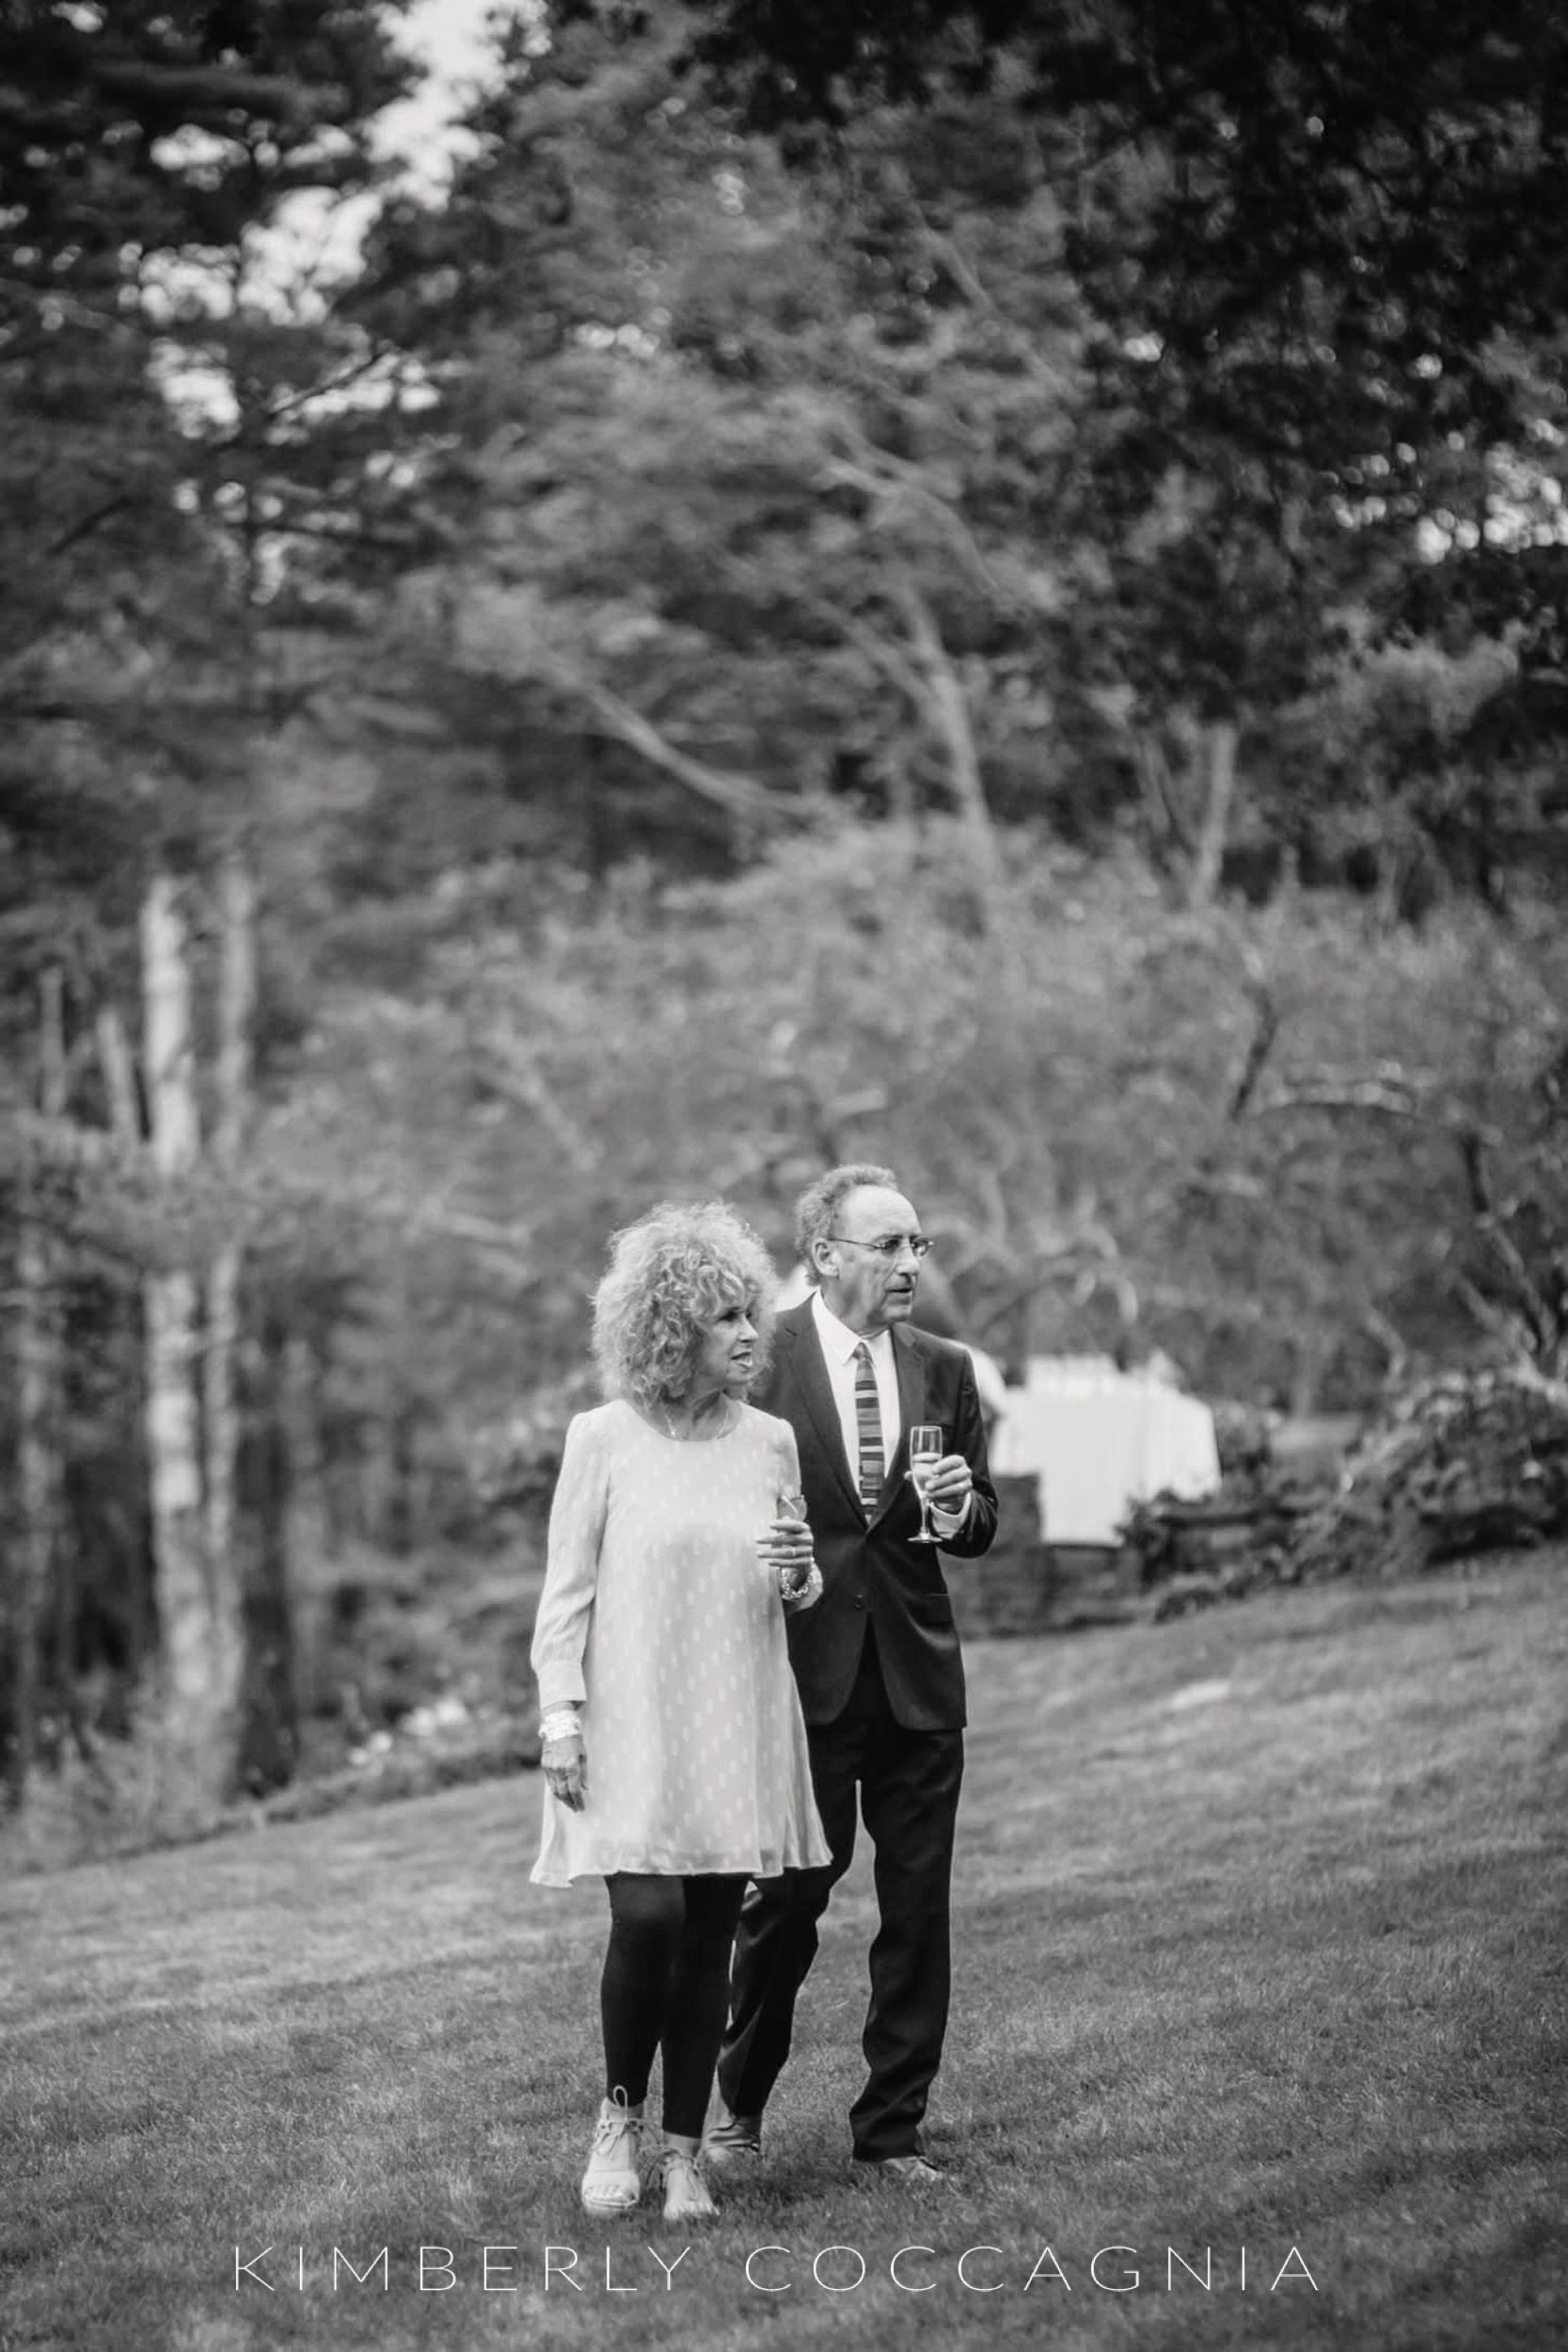 Kimberly+Coccagnia+Hudson+Valley+Wedding+Photographer-31.JPG